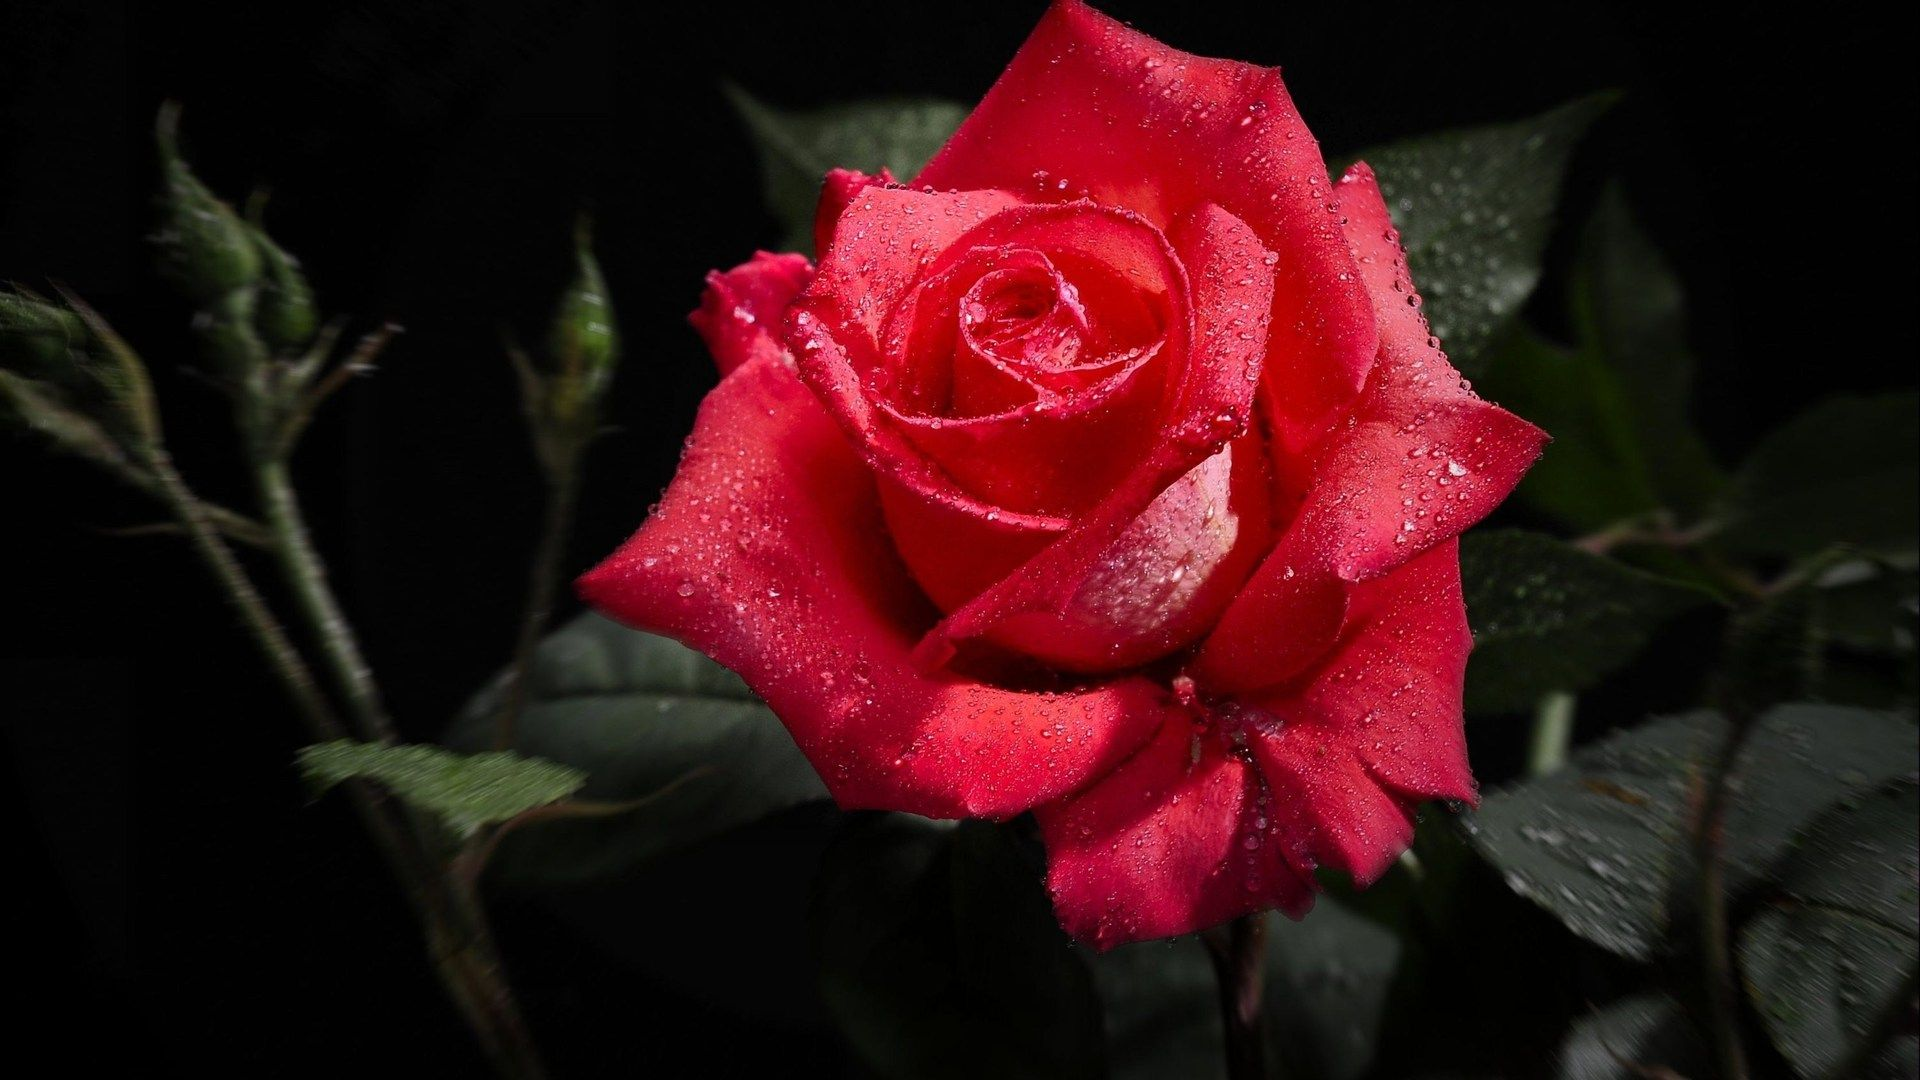 Perfect Red Rose 1080p HD Wallpaper 1080p HD Wallpapers